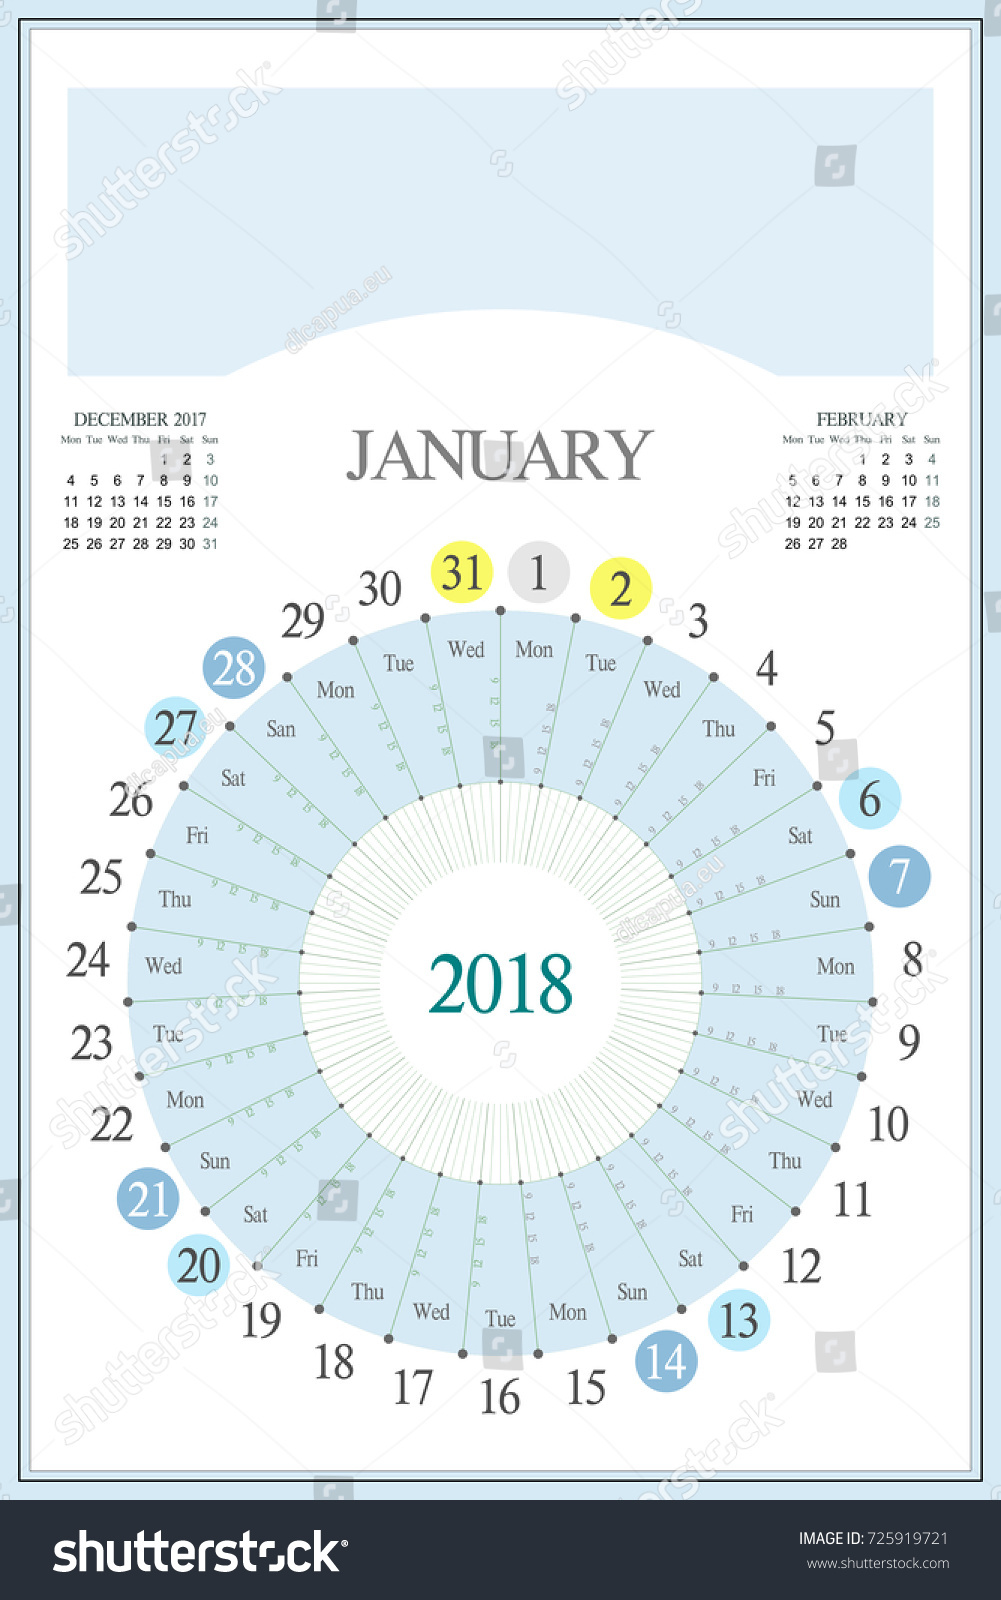 Monthly Calendar Planner 2018 January Highlighted Stock Vector ...